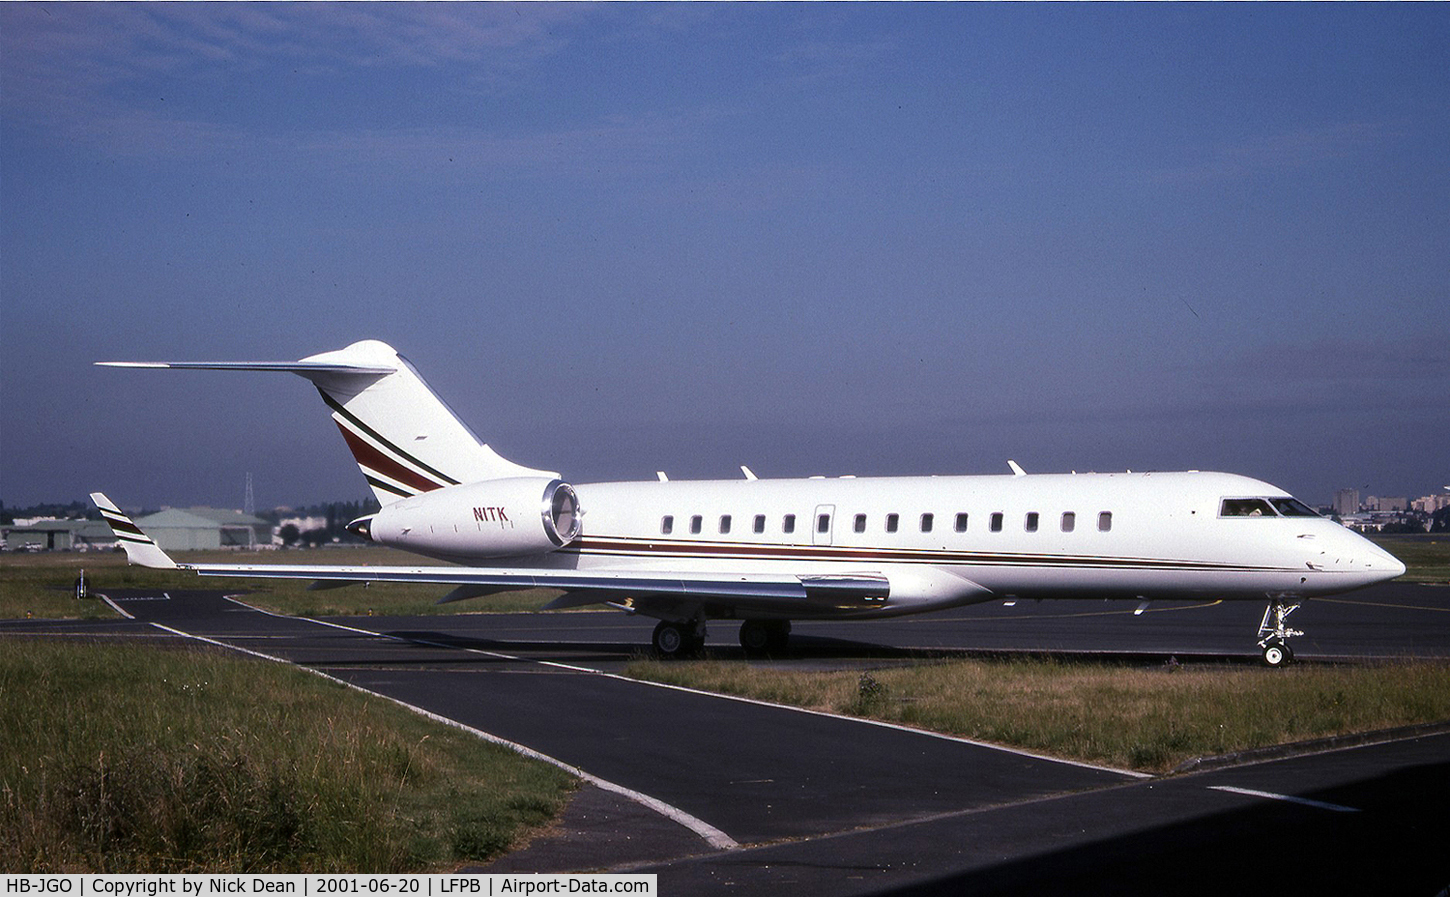 HB-JGO, 1997 Bombardier BD-700-1A10 Global Express C/N 9004, LFPB (Formerly C-FKGX seen here as N1TK and currently registered as posted HB-JGO)